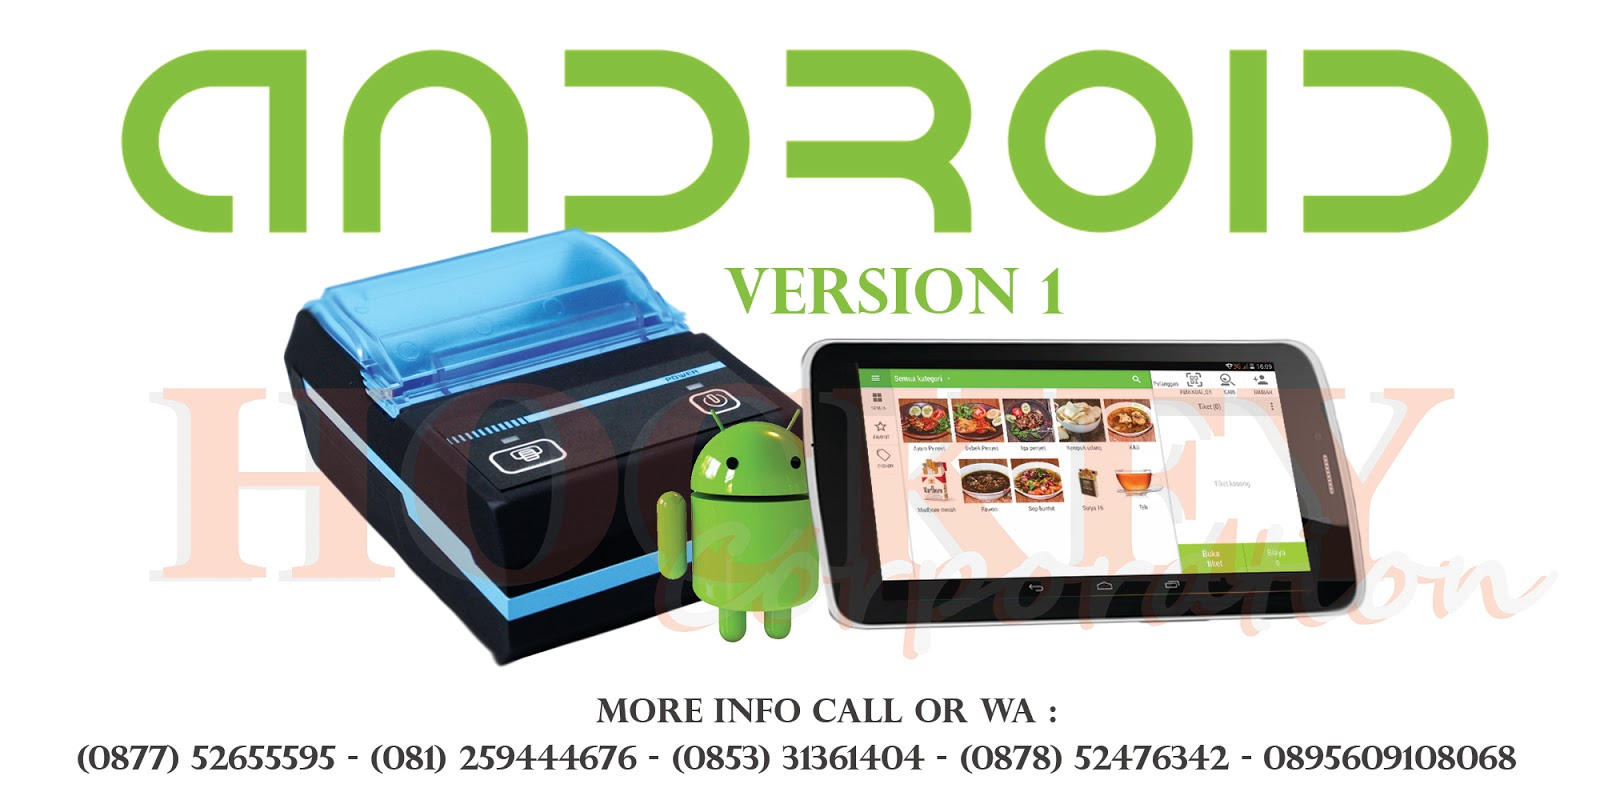 MESIN KASIR,ANDROID,TOUCHSCREEN,SCANNER BARCODE PRINTER,SOFTWARE KASIR,PERLENGKAPAN PERALATAN KASIR